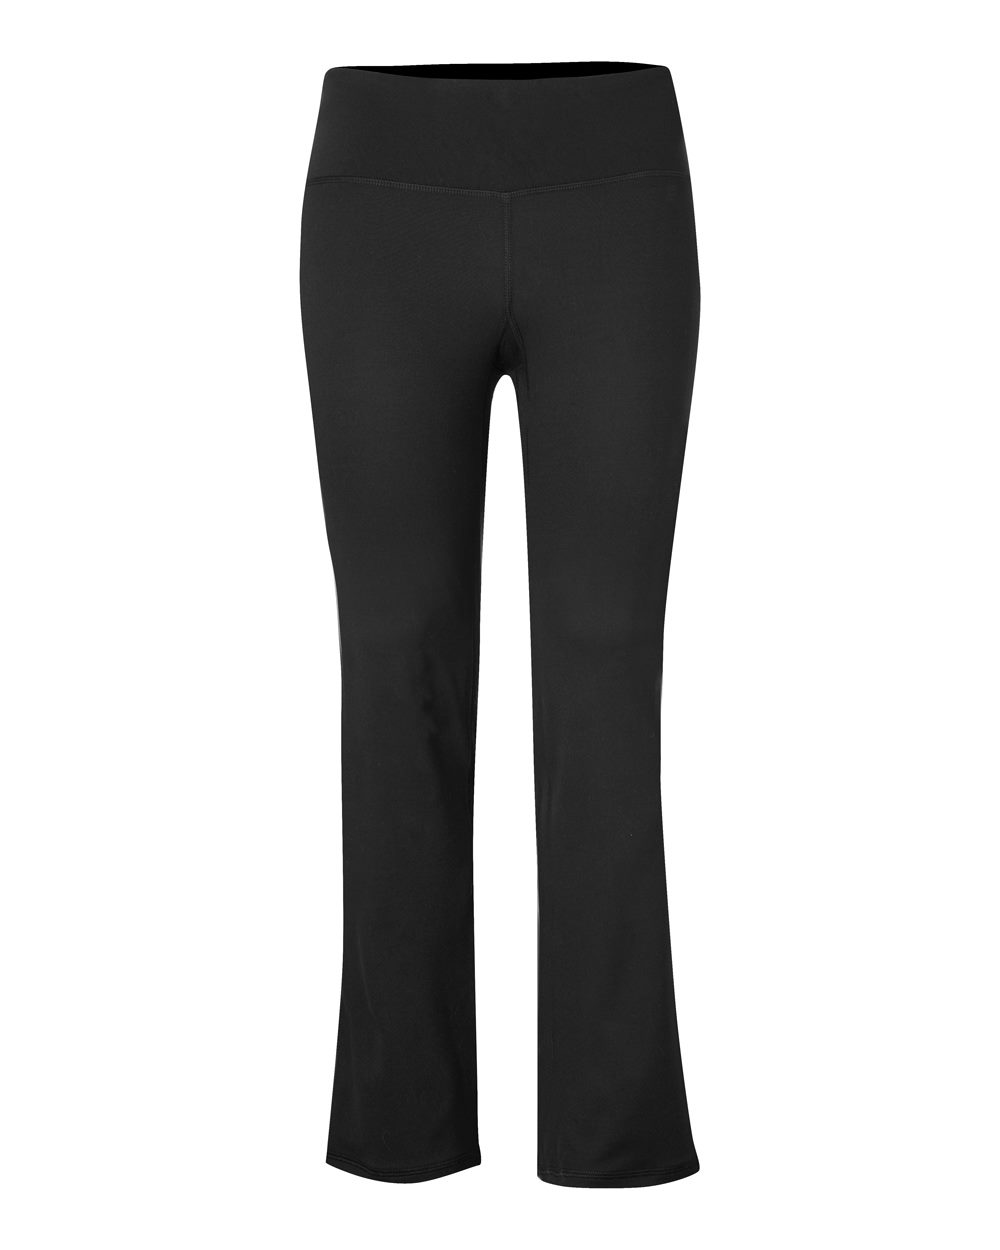 Champion B920 - Women's Performance Yoga Pants